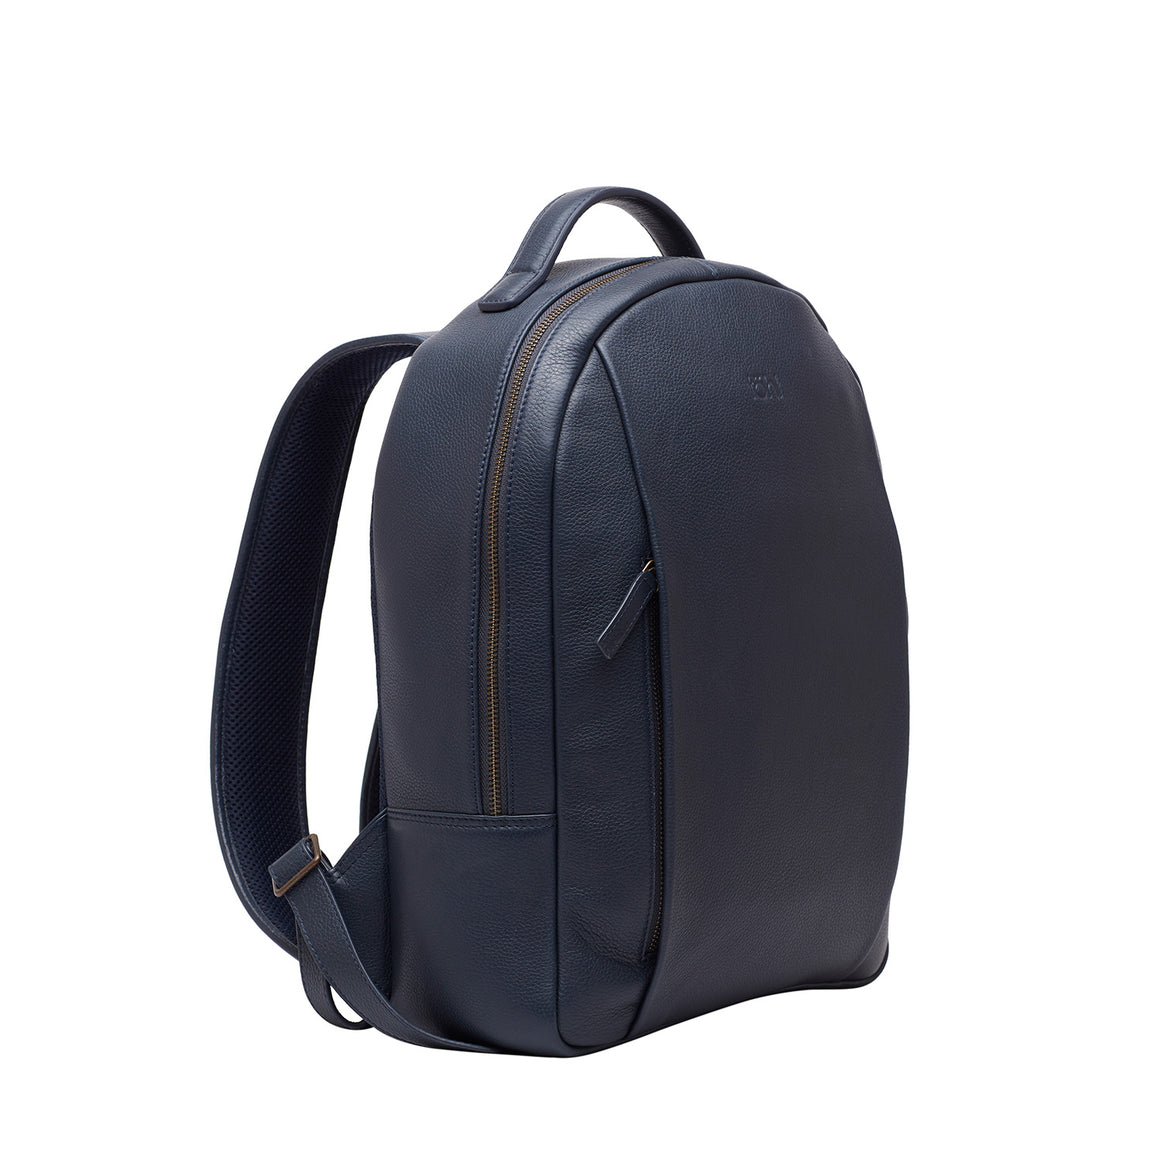 BP 0011 - TOHL LUCA MEN'S BACKPACK - NAVY